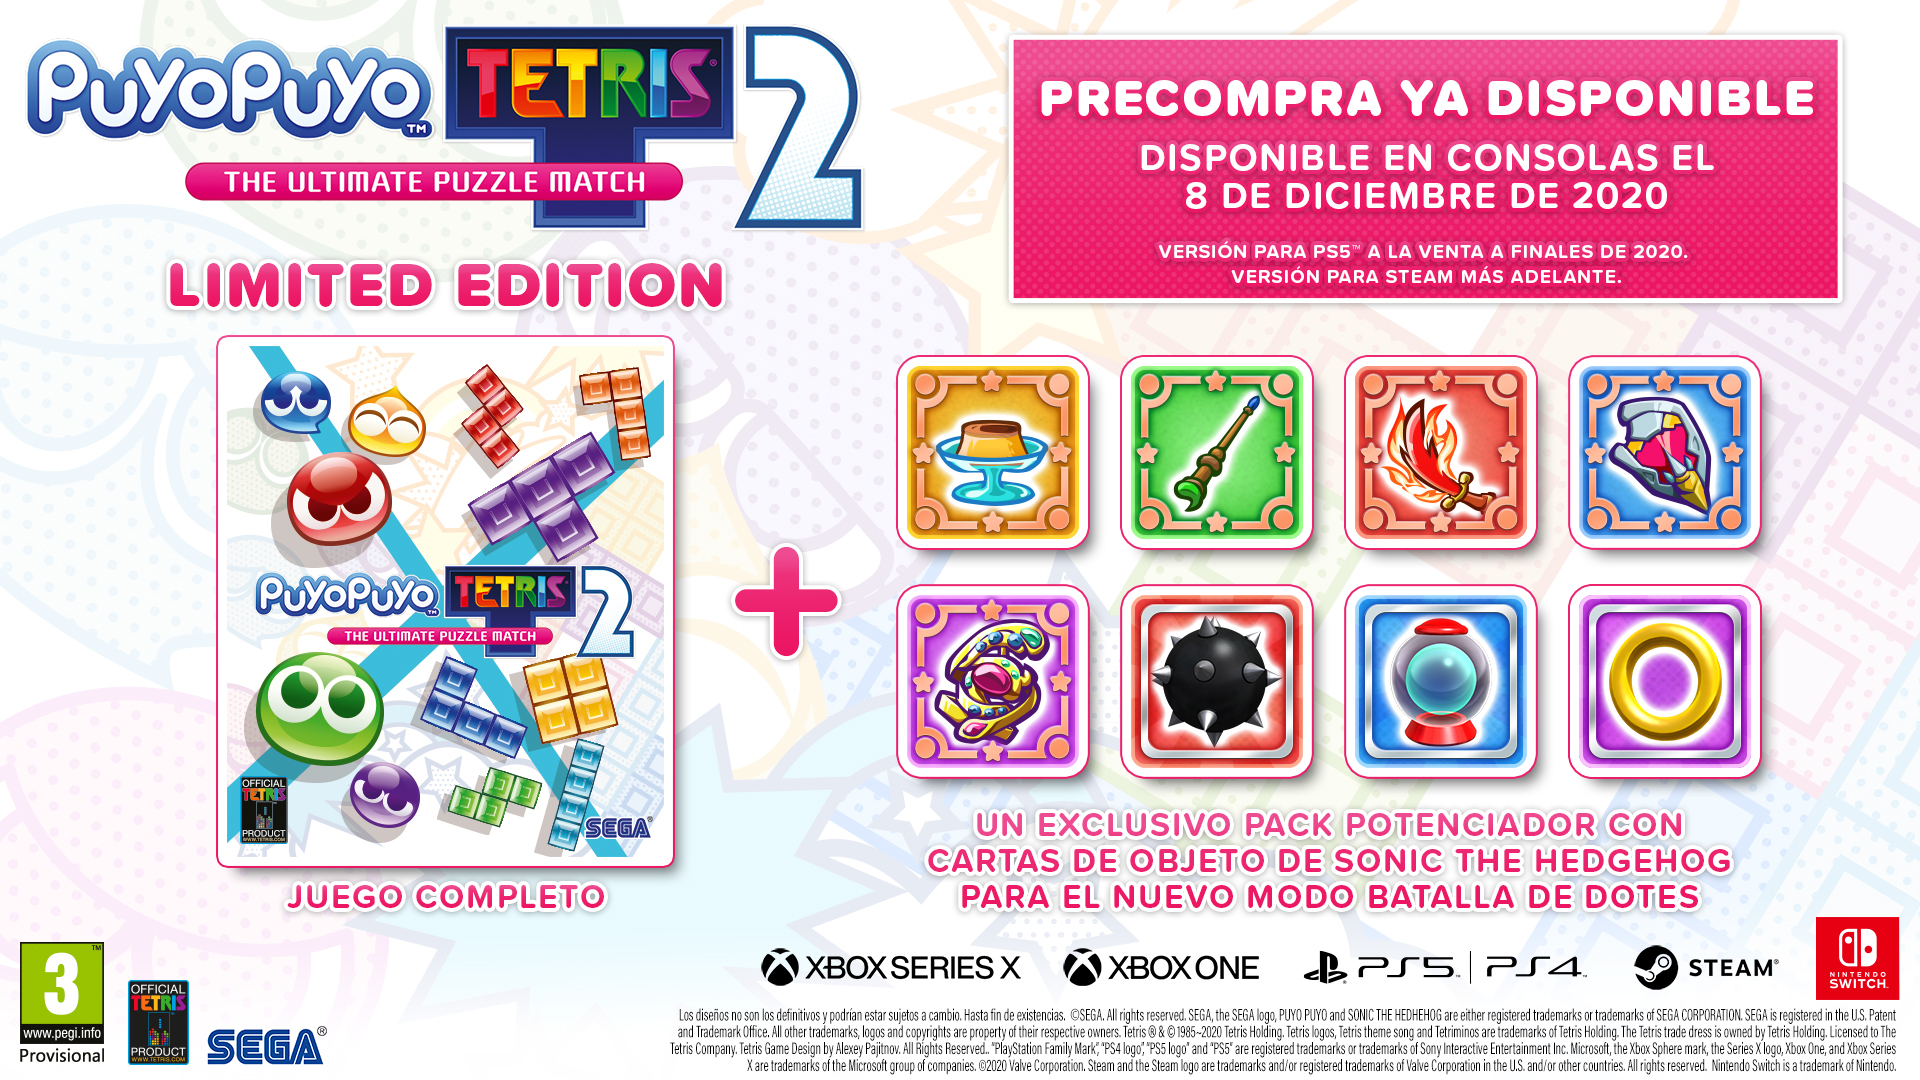 Puyo Puyo Tetris 2 Limited Edition